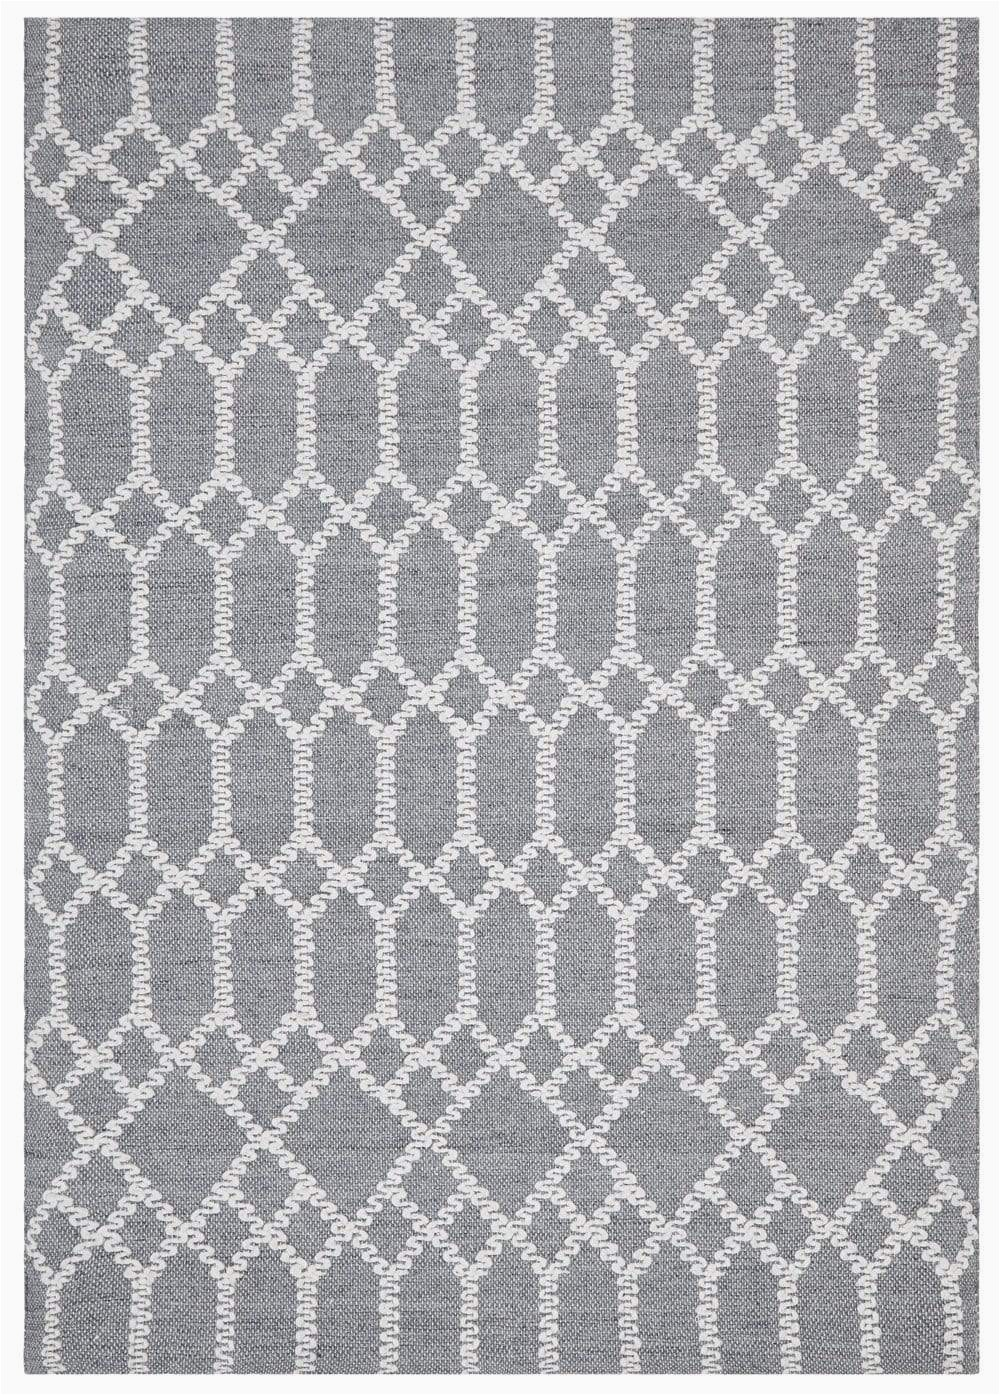 Blue and White Patterned Rug Breckenridge Dark Blue and Ivory Geometric Pattern Rug